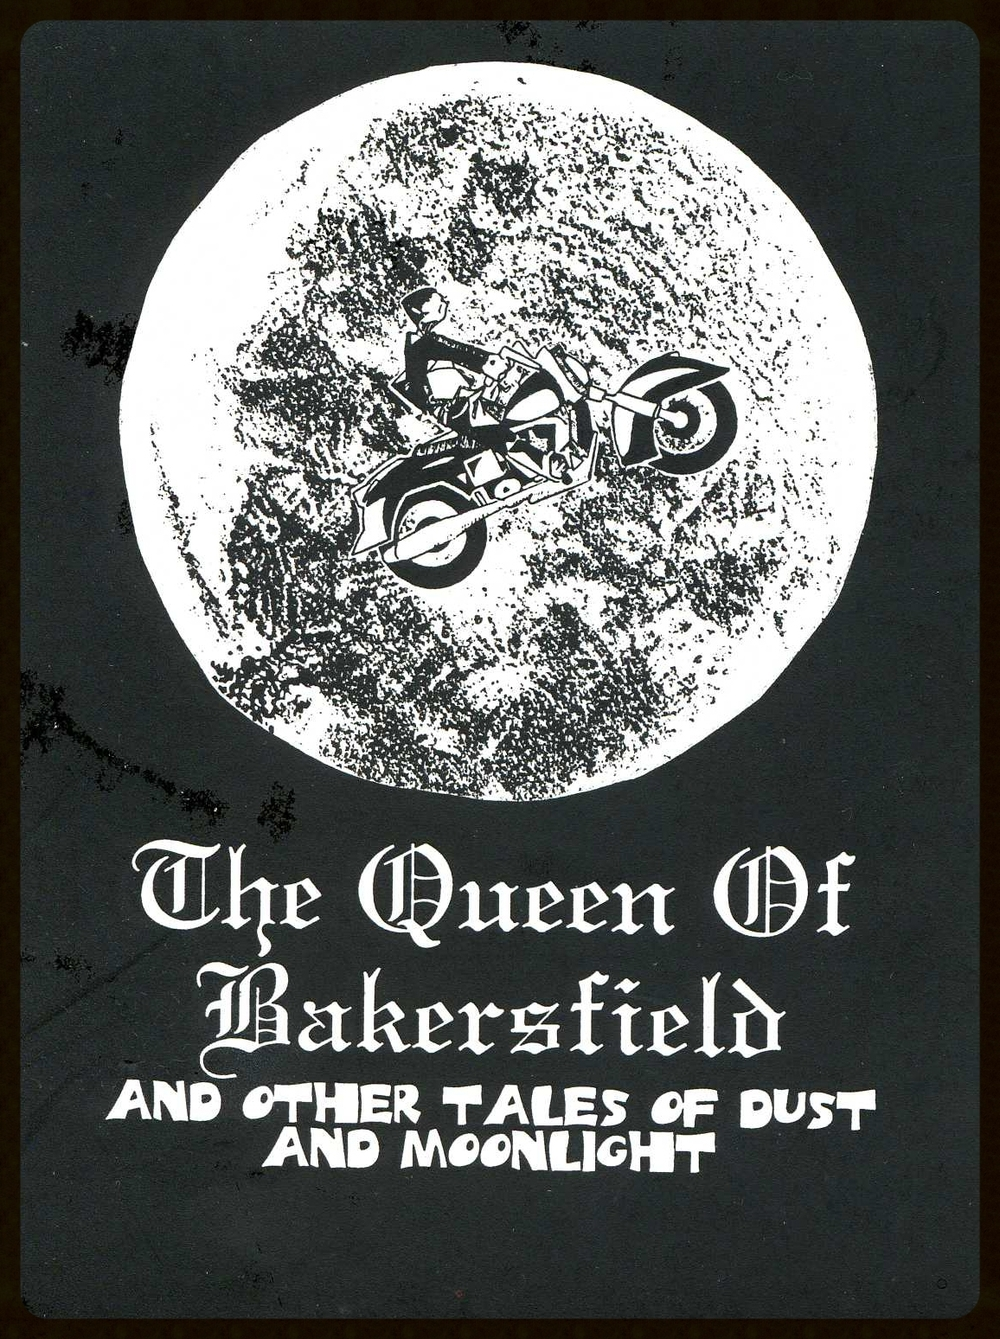 The Queen of Bakersfield & other tales of dust and moonlight